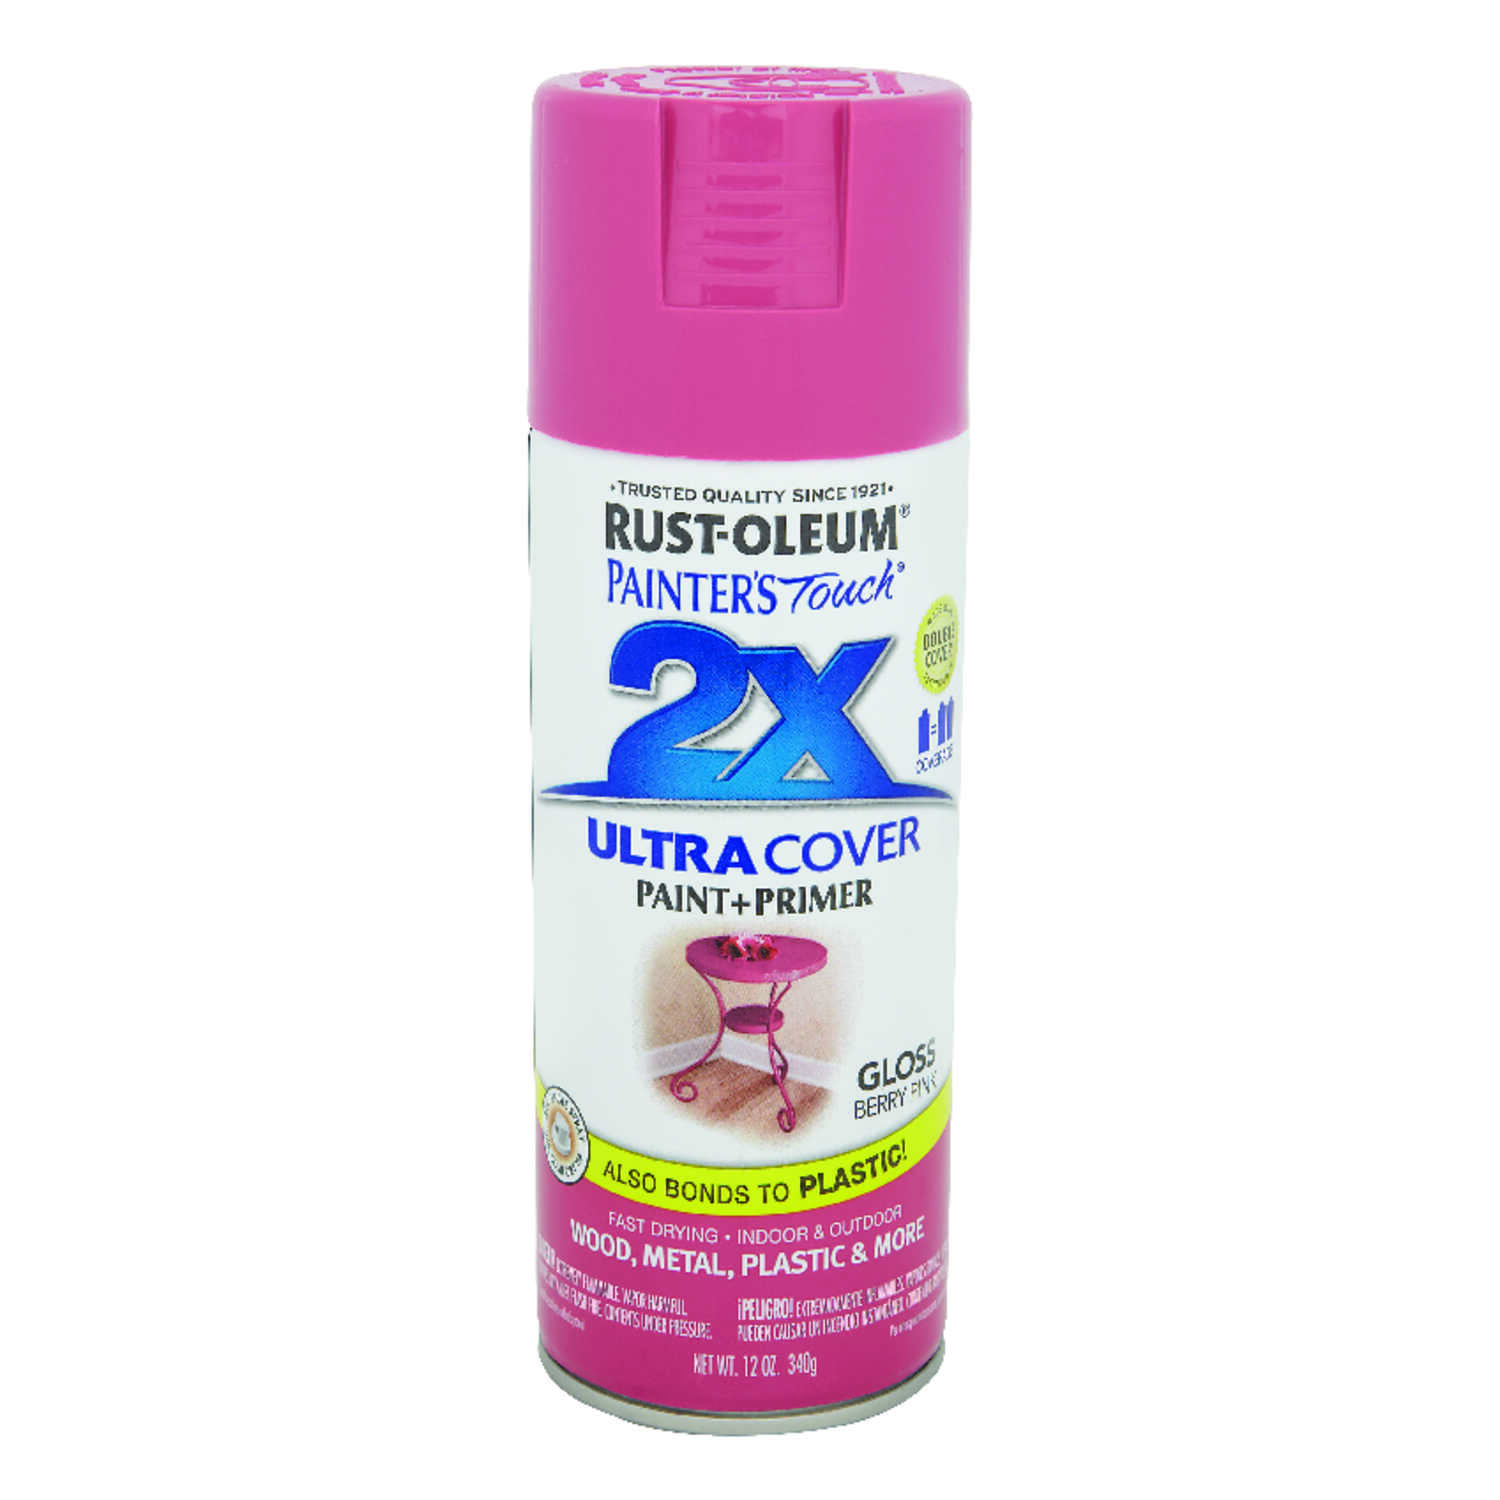 Rust-Oleum  Painter's Touch Ultra Cover  Gloss  Berry Pink  Spray Paint  12 oz.